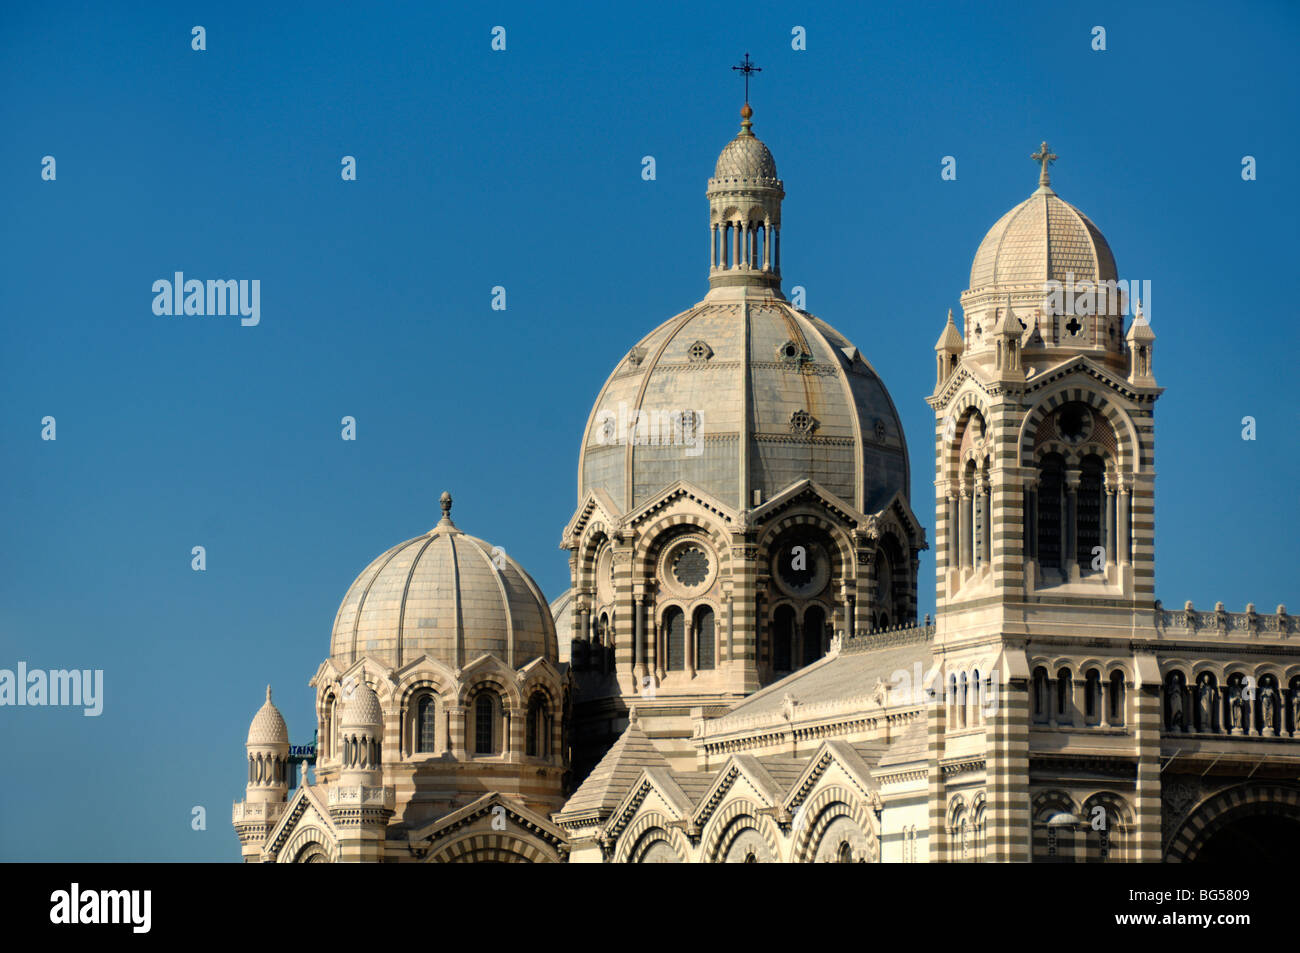 Domes & Cupolas of the Romano-Byzantine Style Cathedral or Cathédrale de la Major, Marseille or Marseilles, - Stock Image